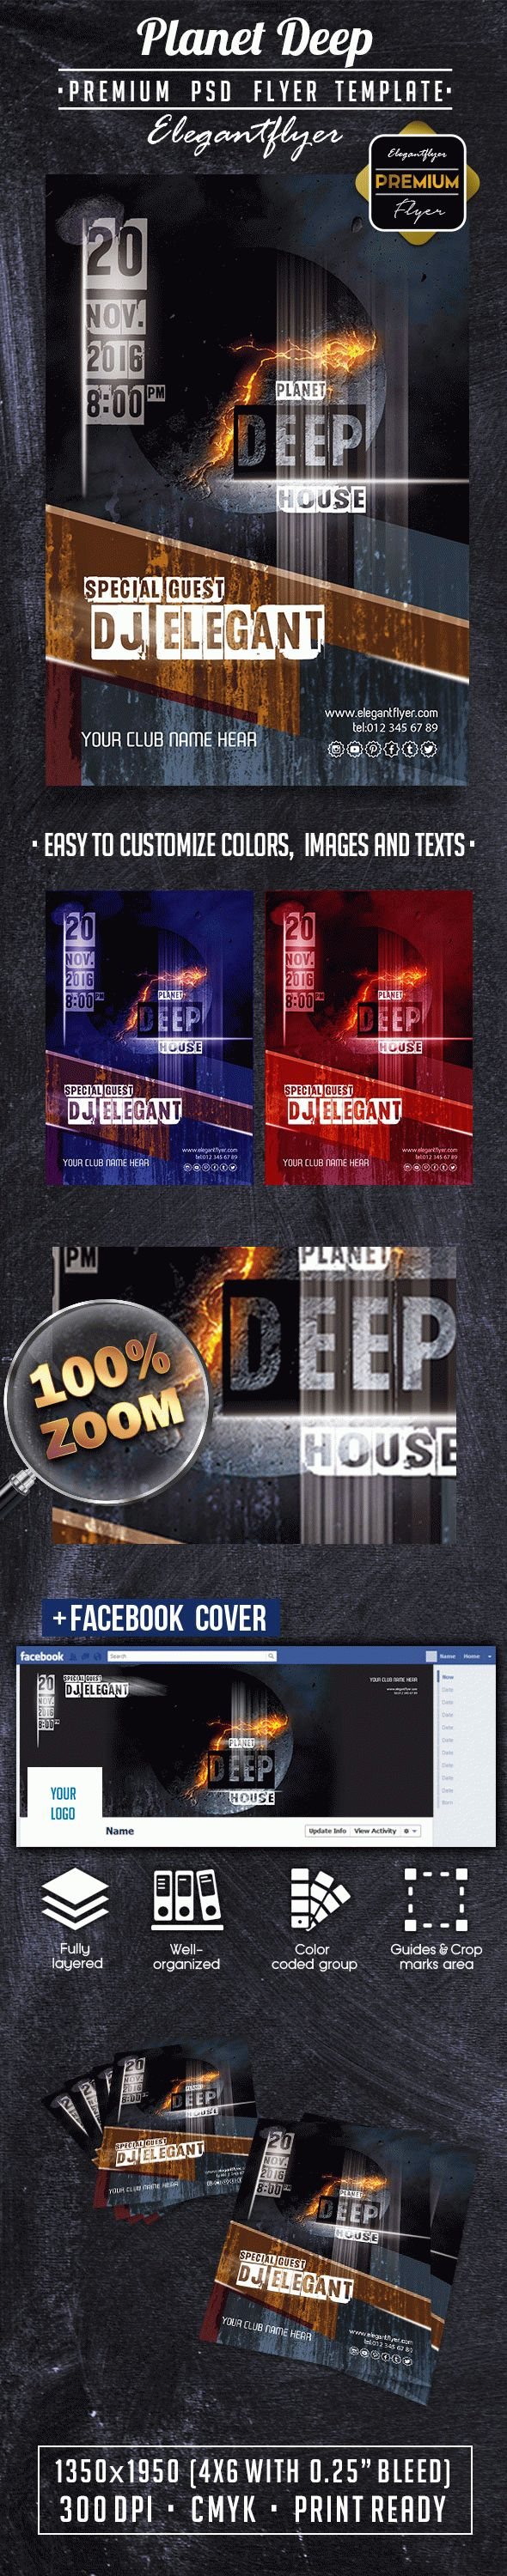 Planet DEEP Flyer PSD Template + Facebook Cover